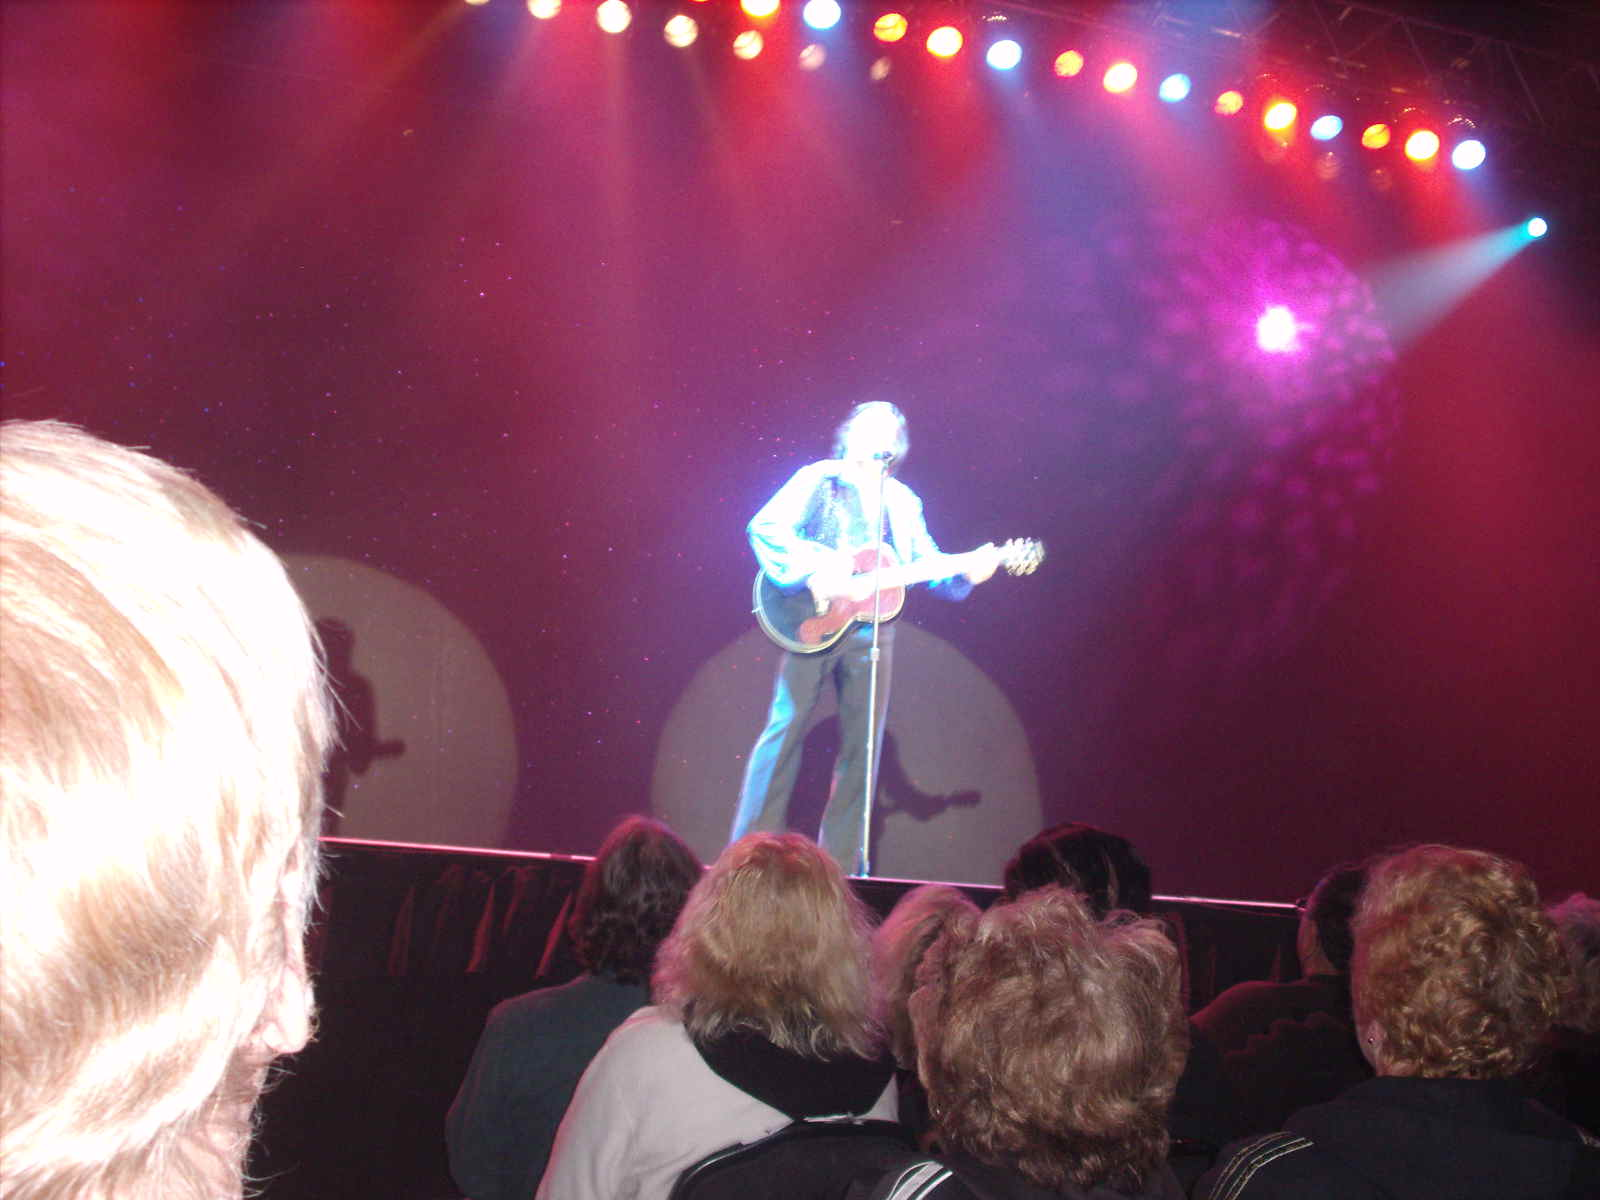 Tom Sadge as Neil Diamond: Onstage in A Really Big Shew at the Hilton Casino Resort in Atlantic City NJ - Photo: Marion Sadge - webmaster of TomSadge.com